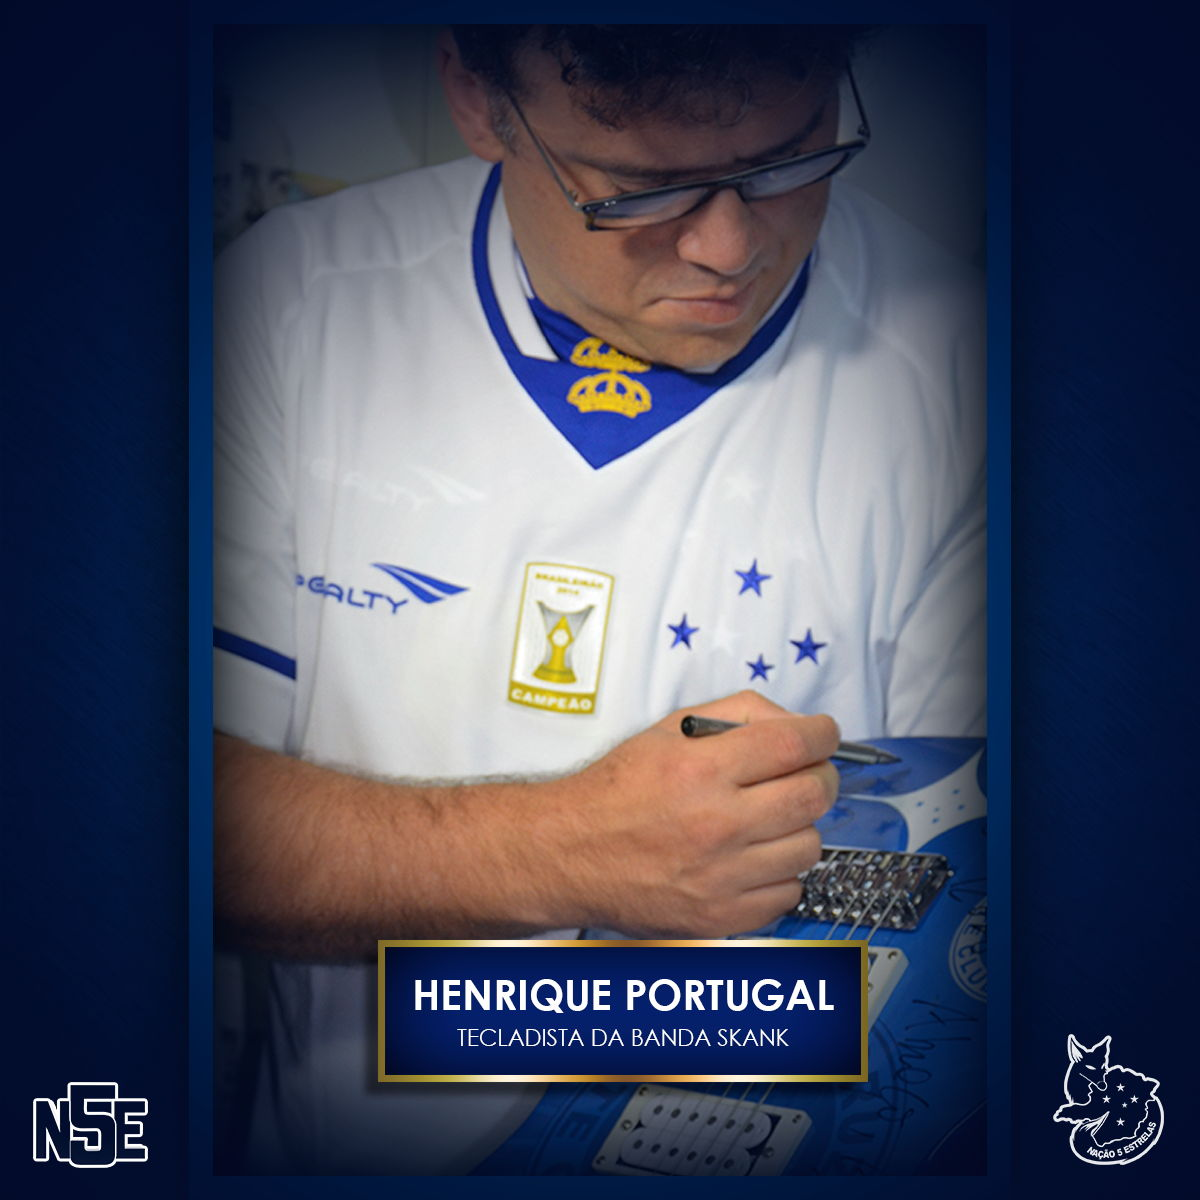 Henrique Portugal